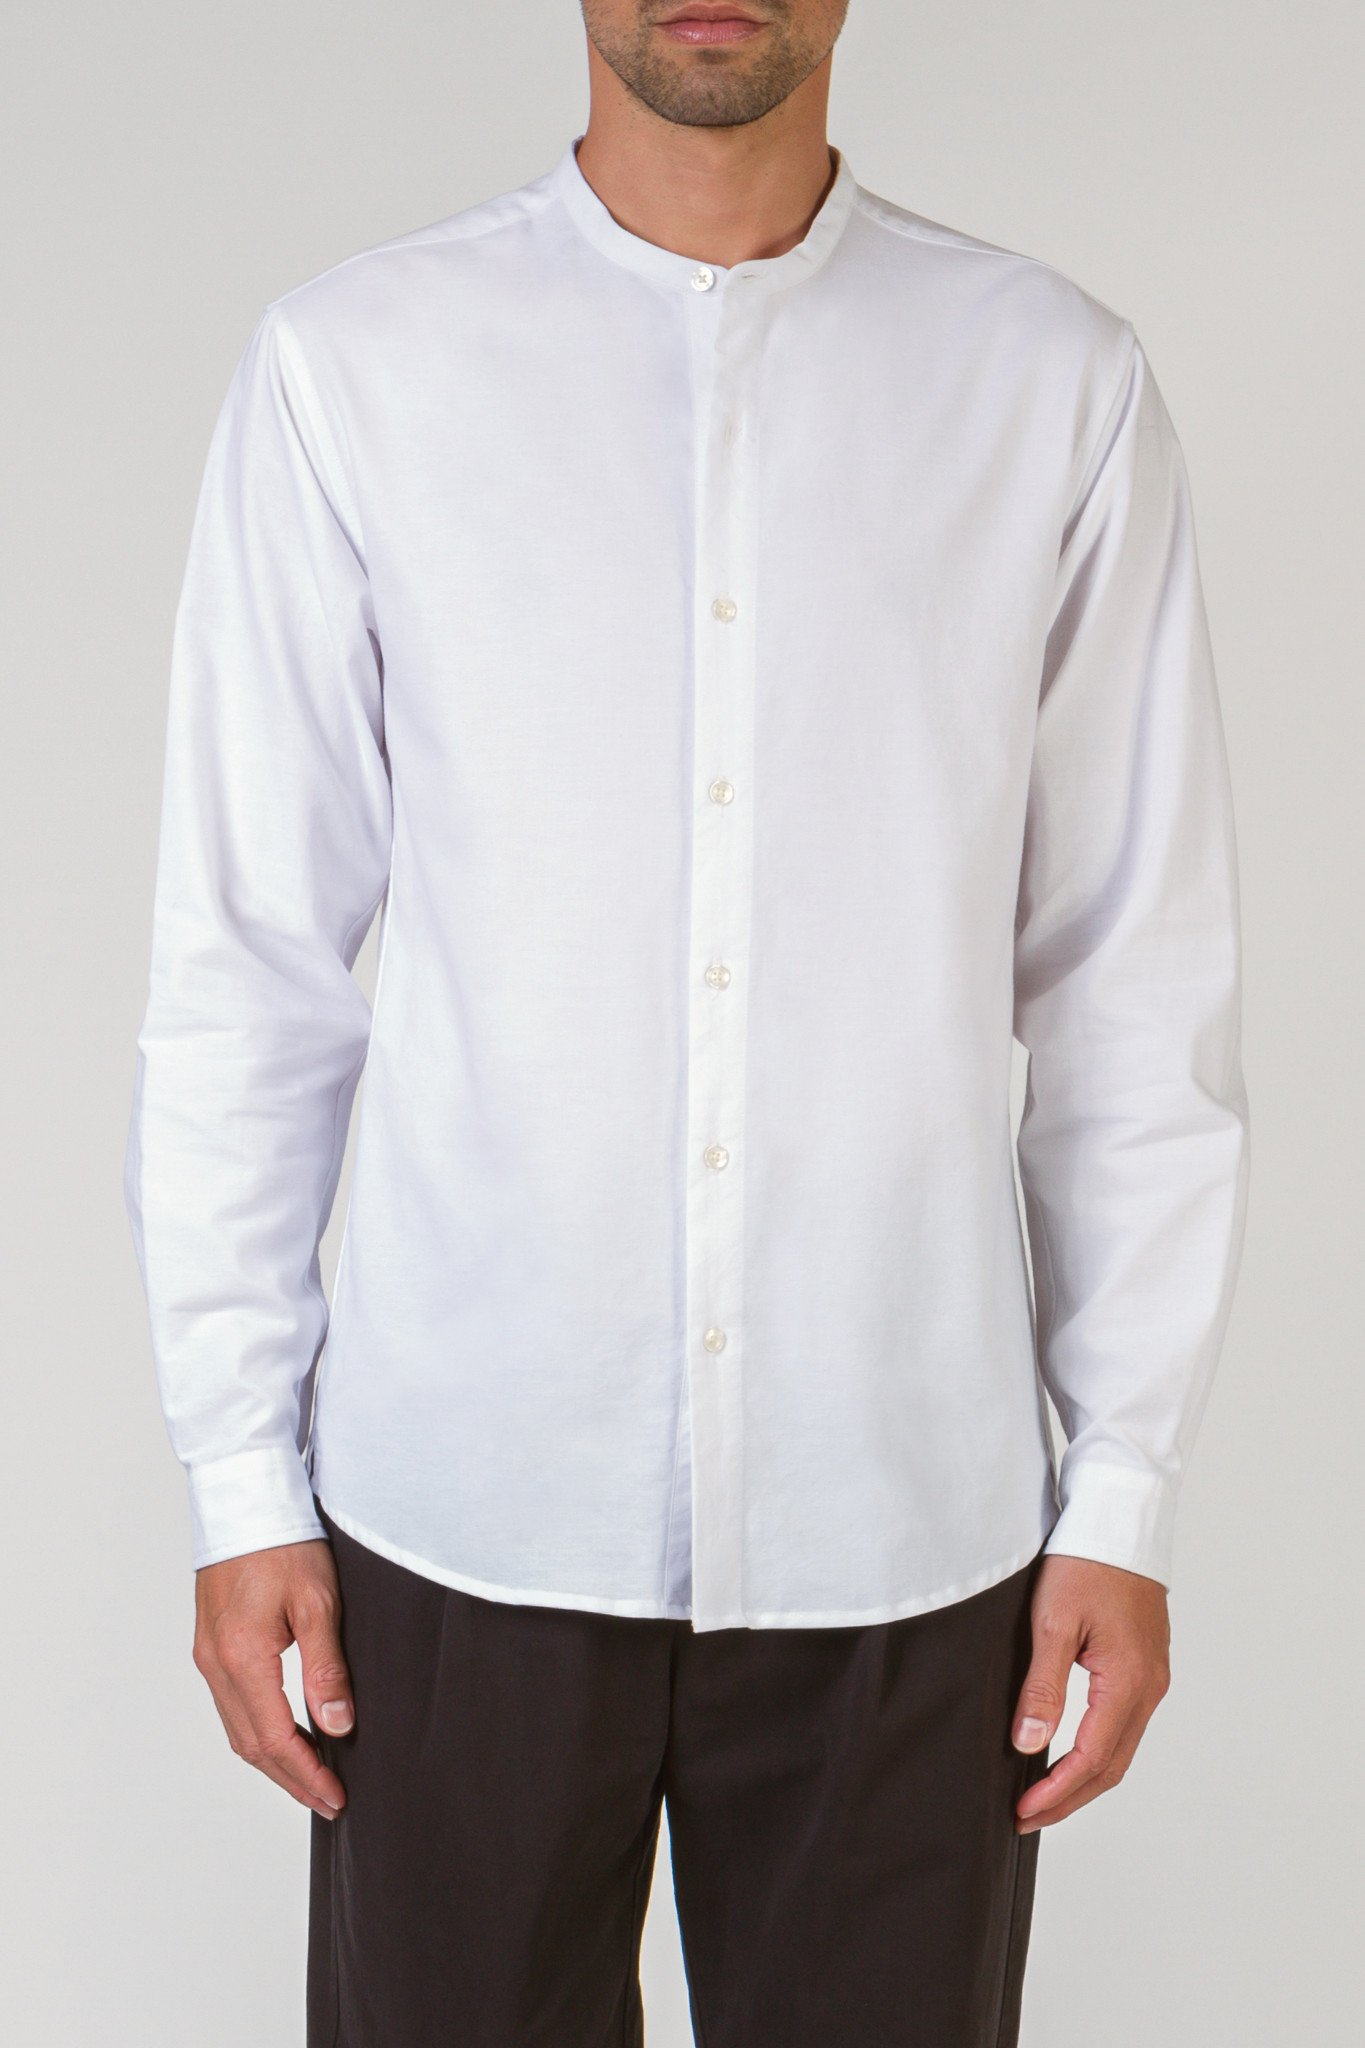 BAND COLLAR WHITE BUTTON DOWN SHIRT